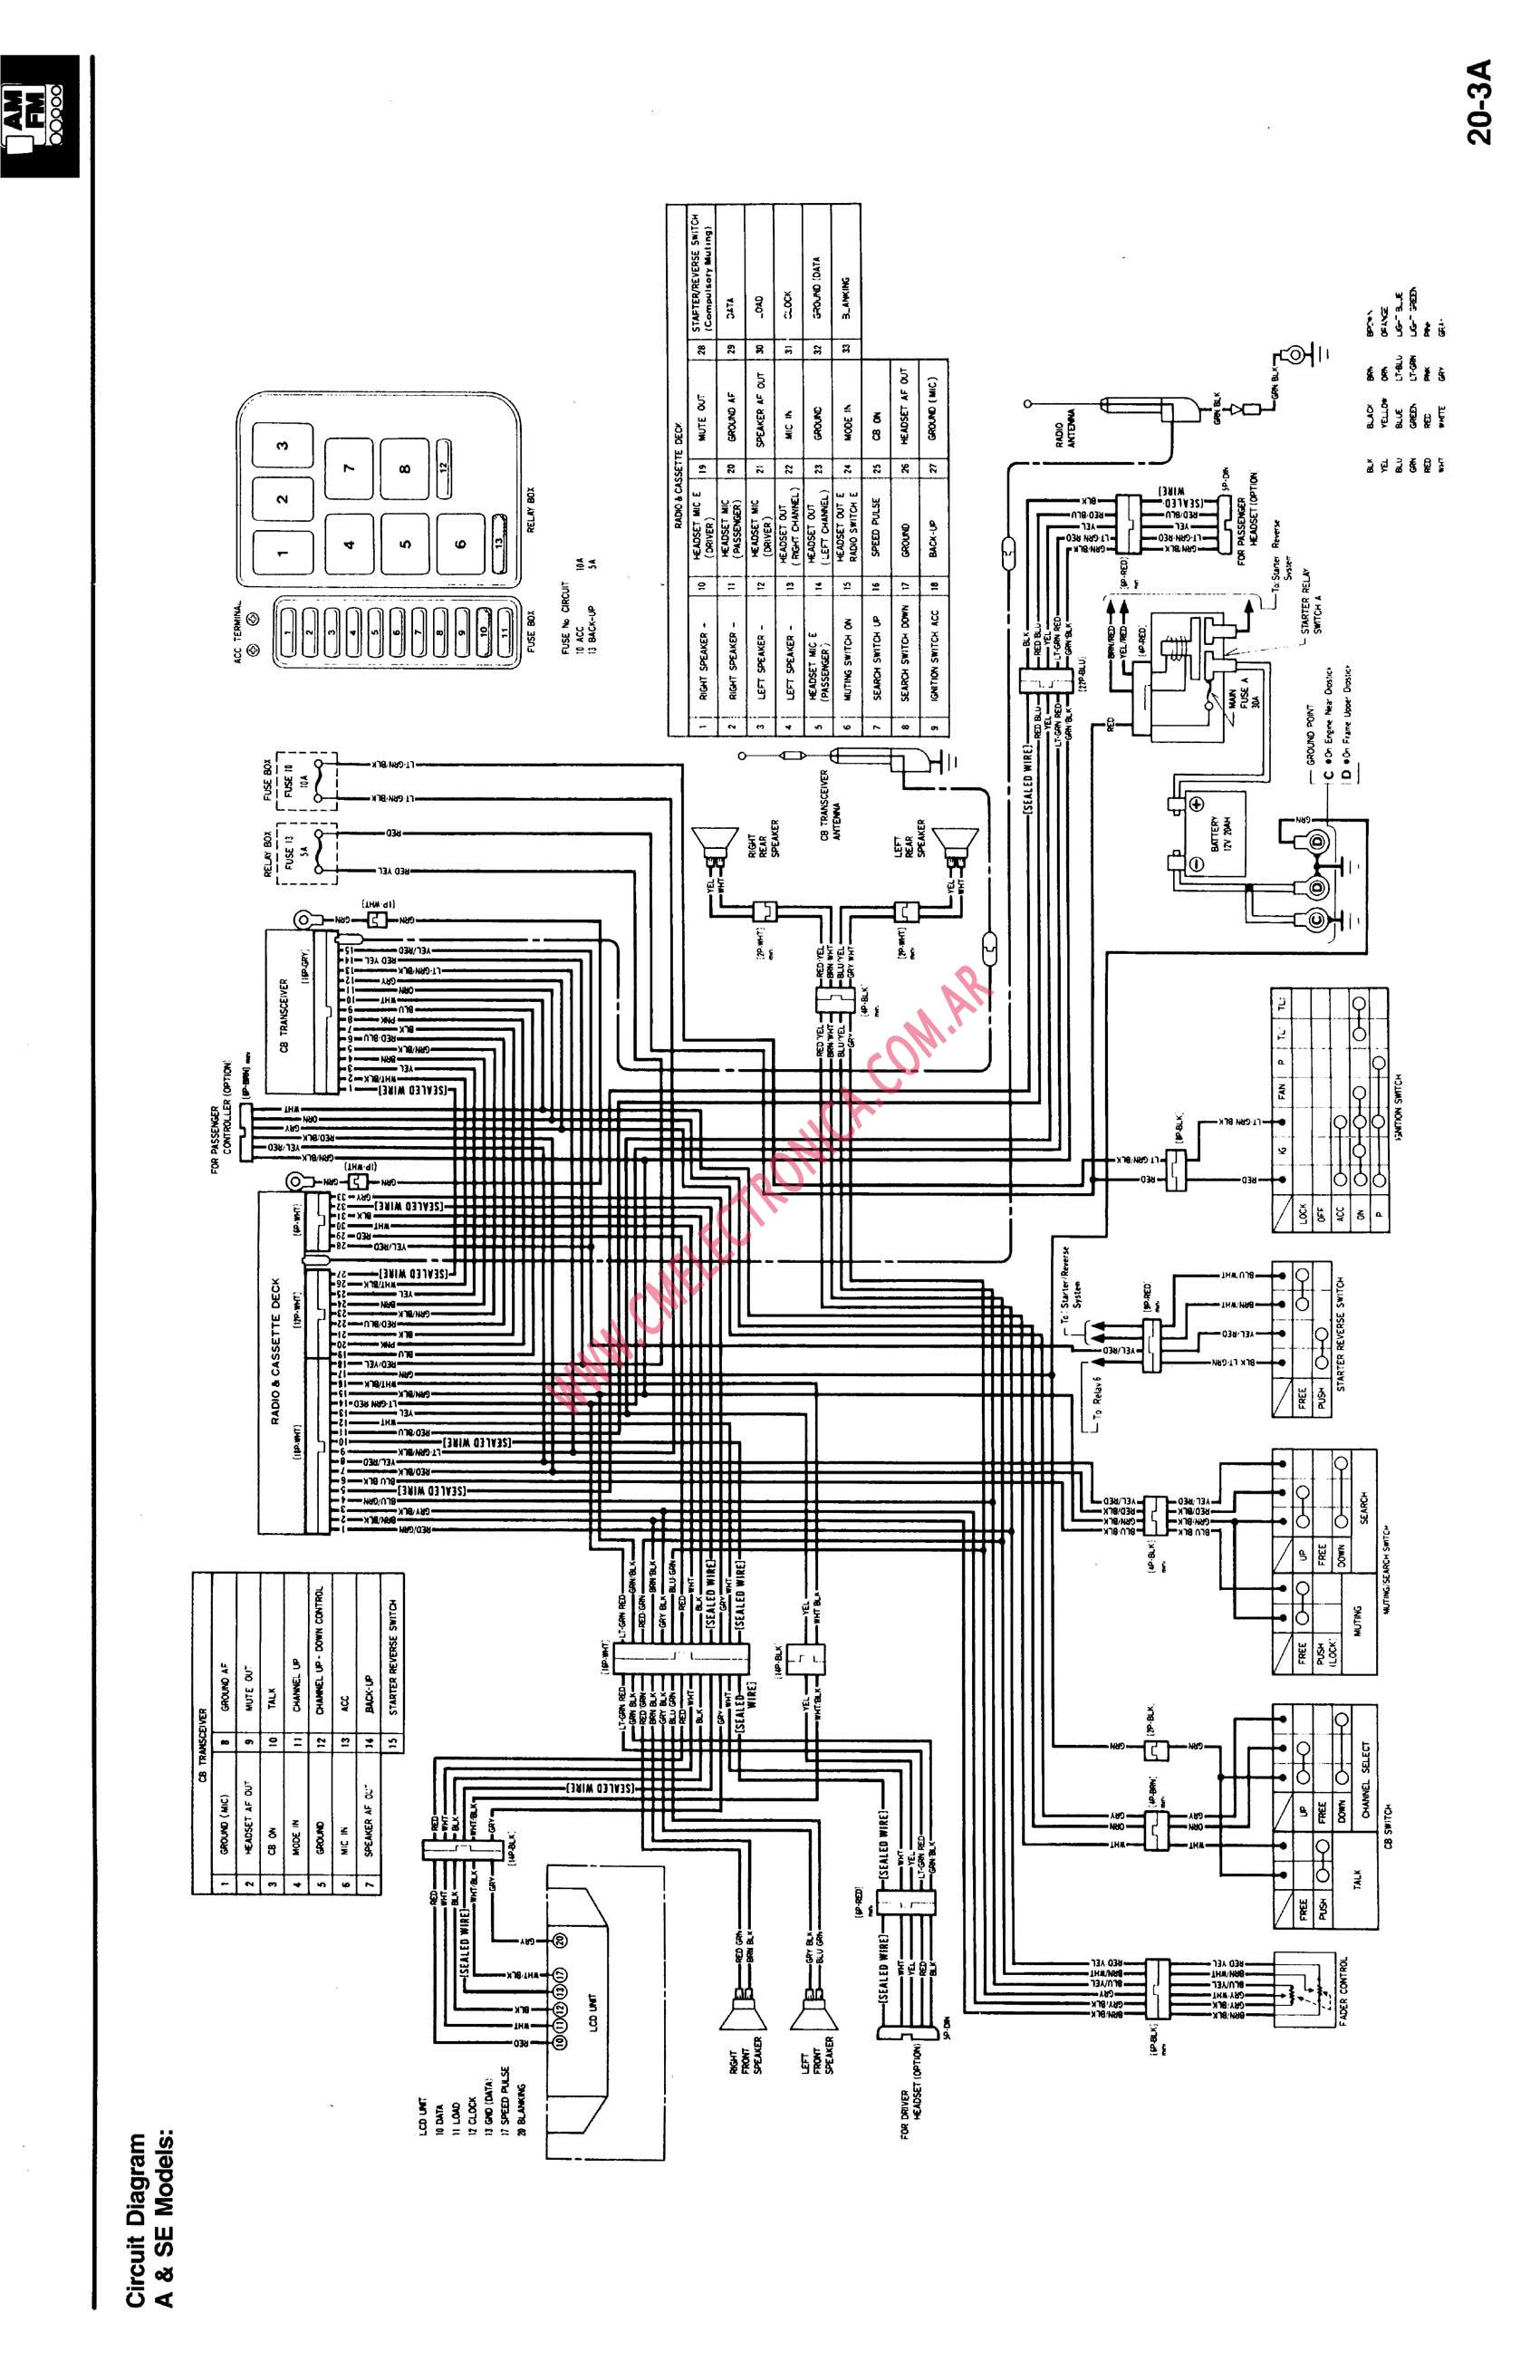 03 R1 Wiring Diagram, 03, Free Engine Image For User